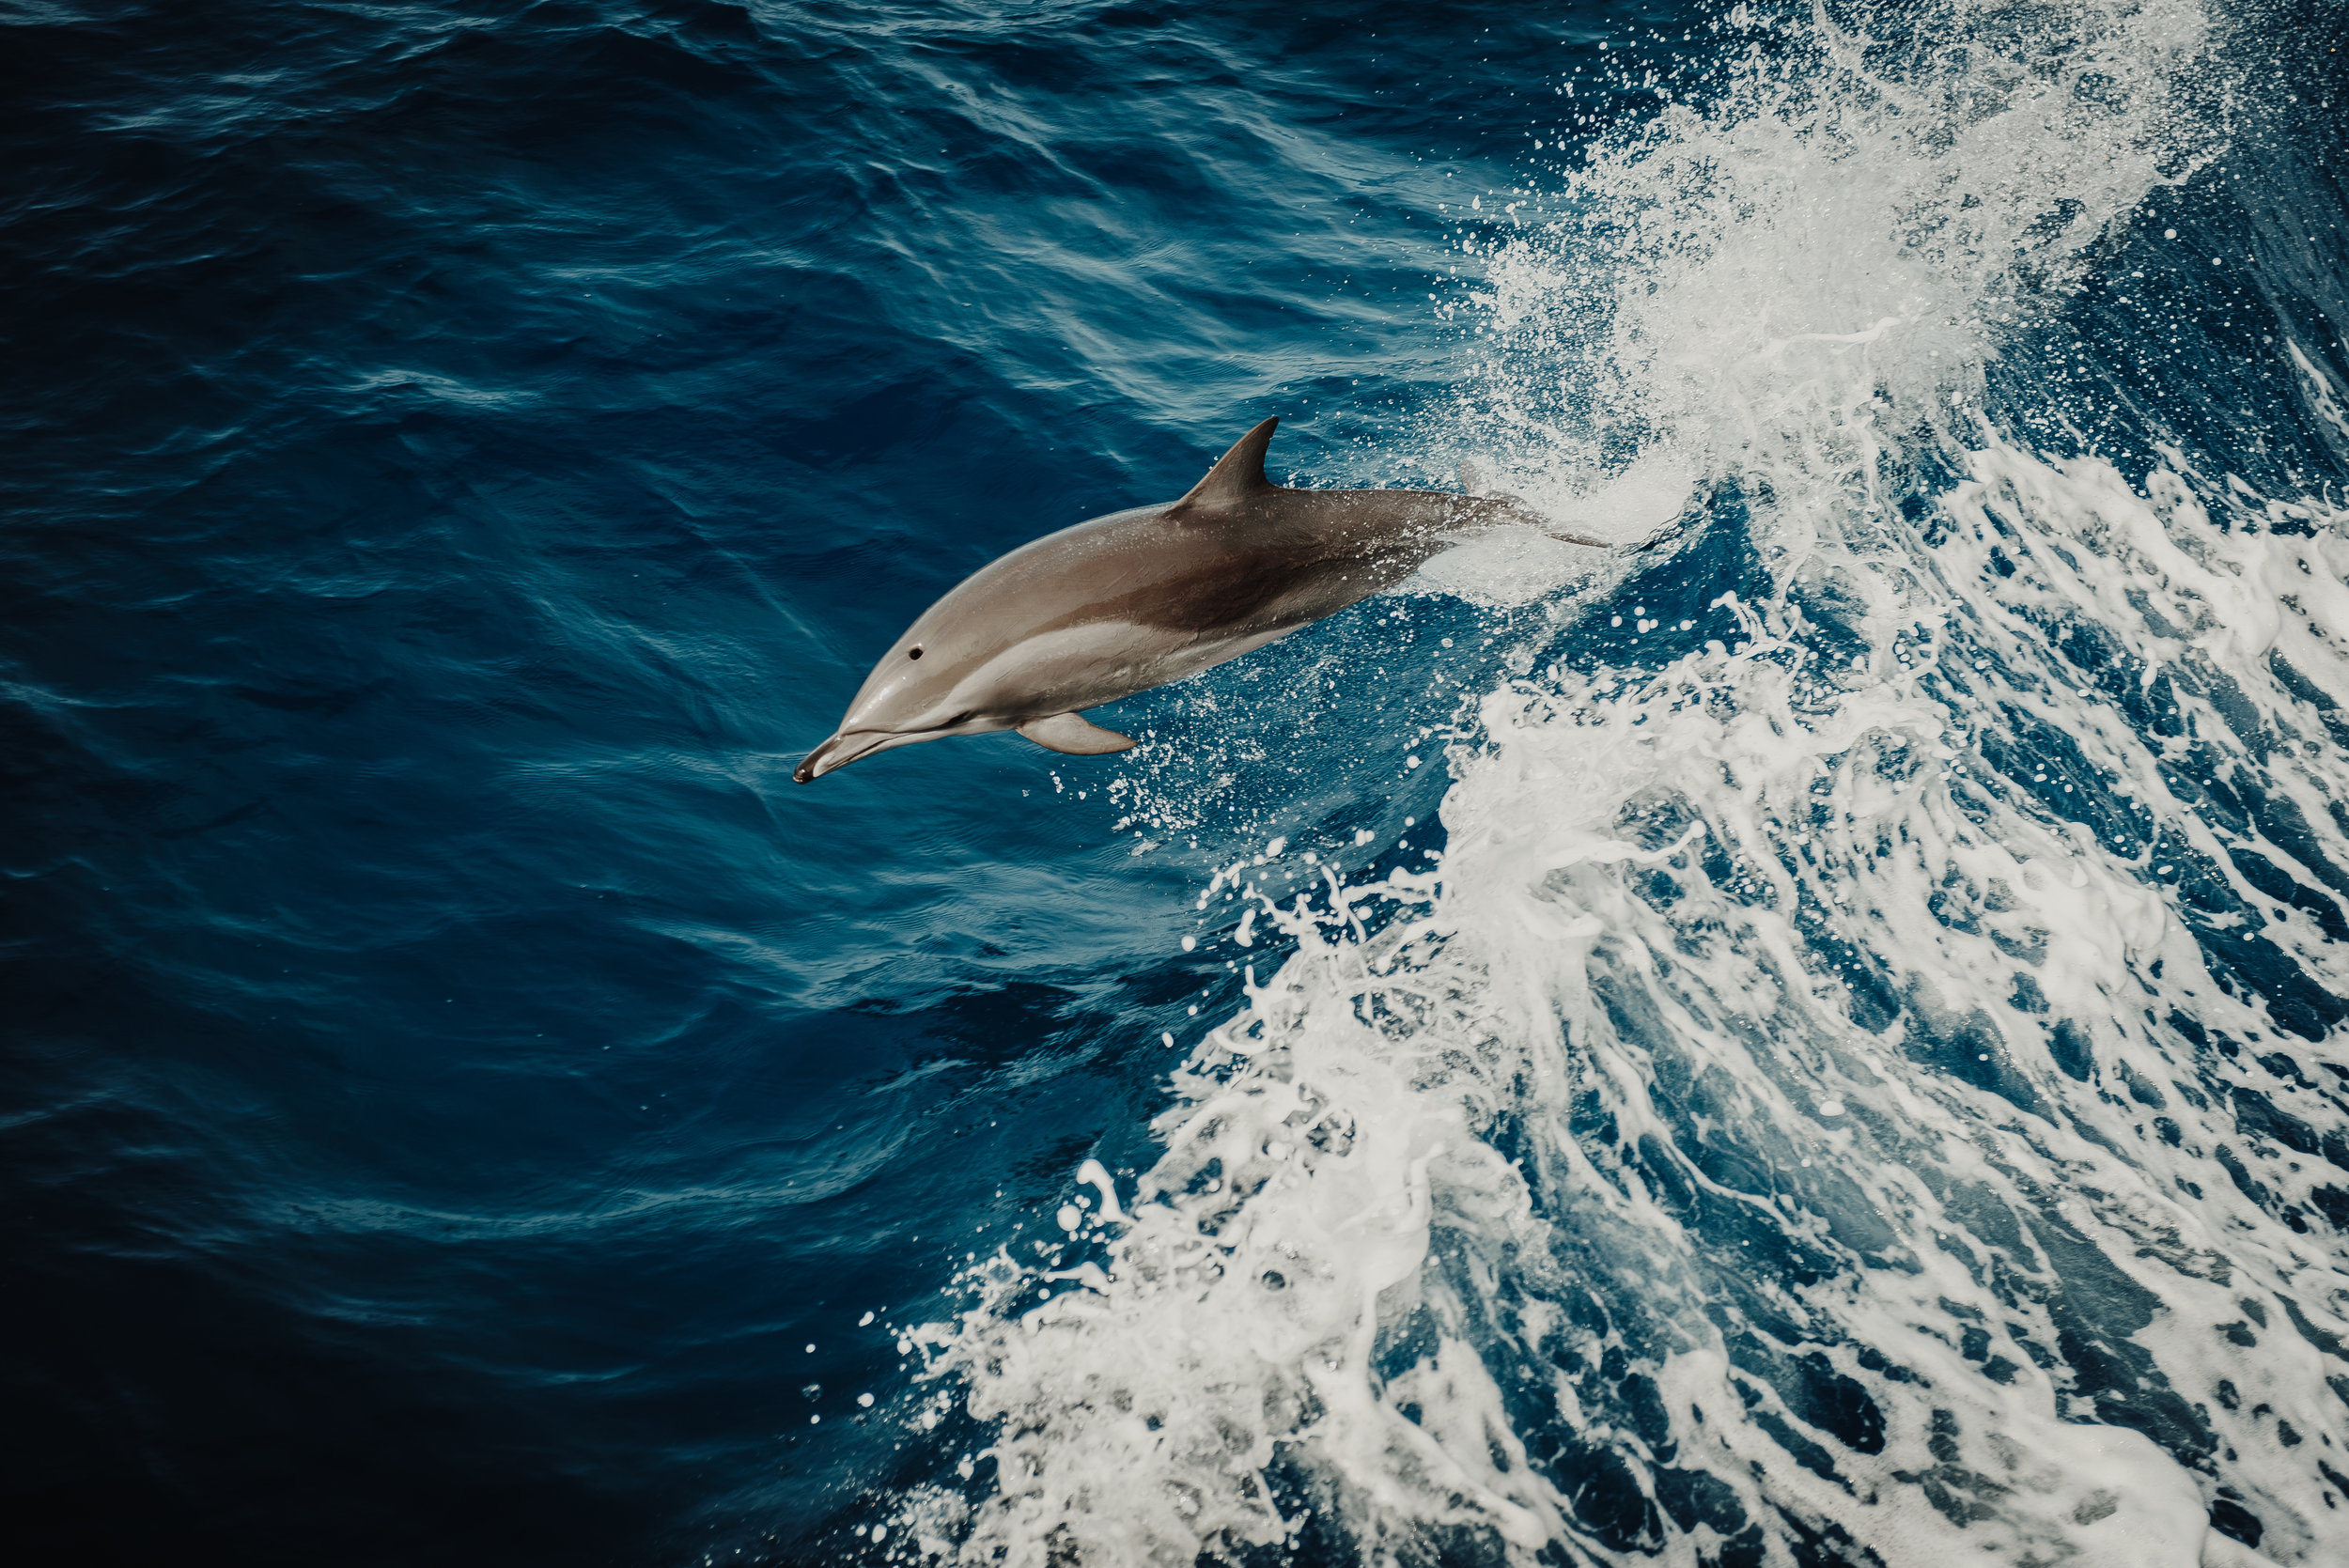 Be at peace with this dolphin photo. You can reach out to us and we will resolve your PR issues.